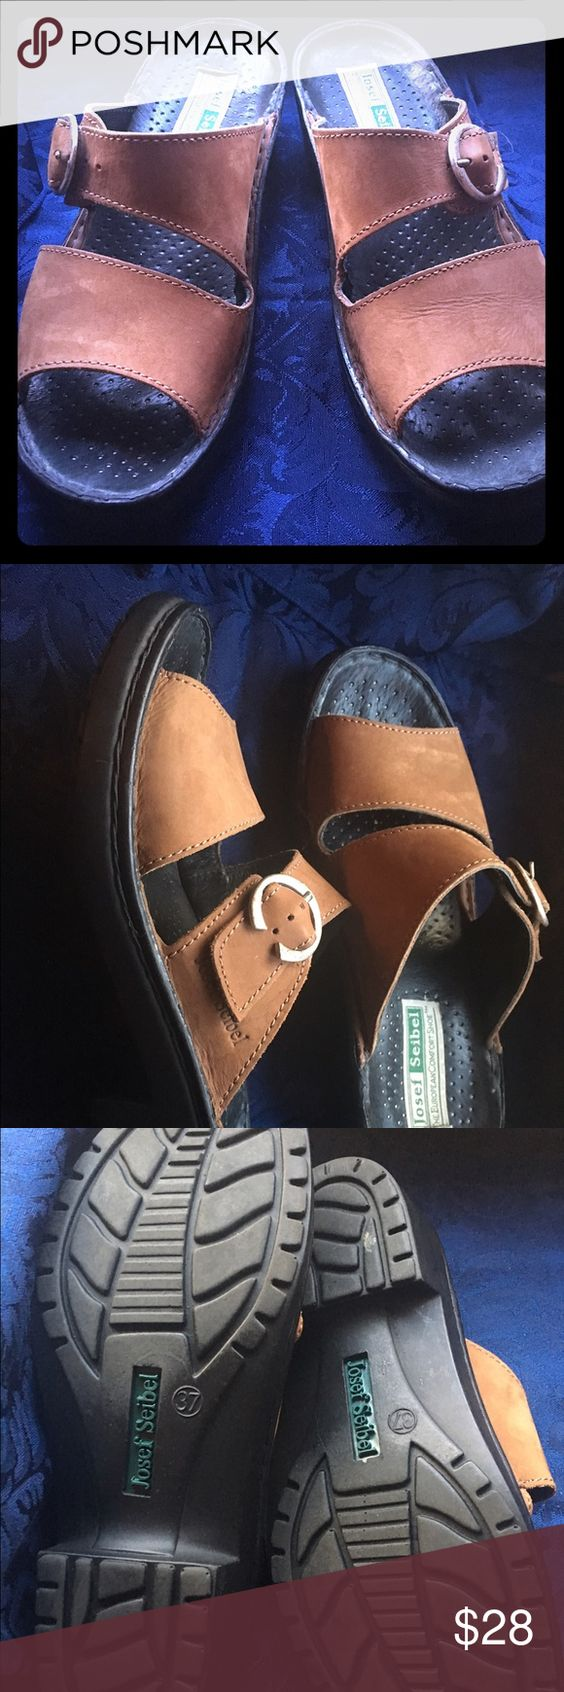 Josef Seibel brown leather sandals size 37 Some wear but still very comfortable and the soles are in great shape! Size 37. Brown leather with a side buckle. Perfect for fall walks in the park! Josef Seibel Shoes Sandals